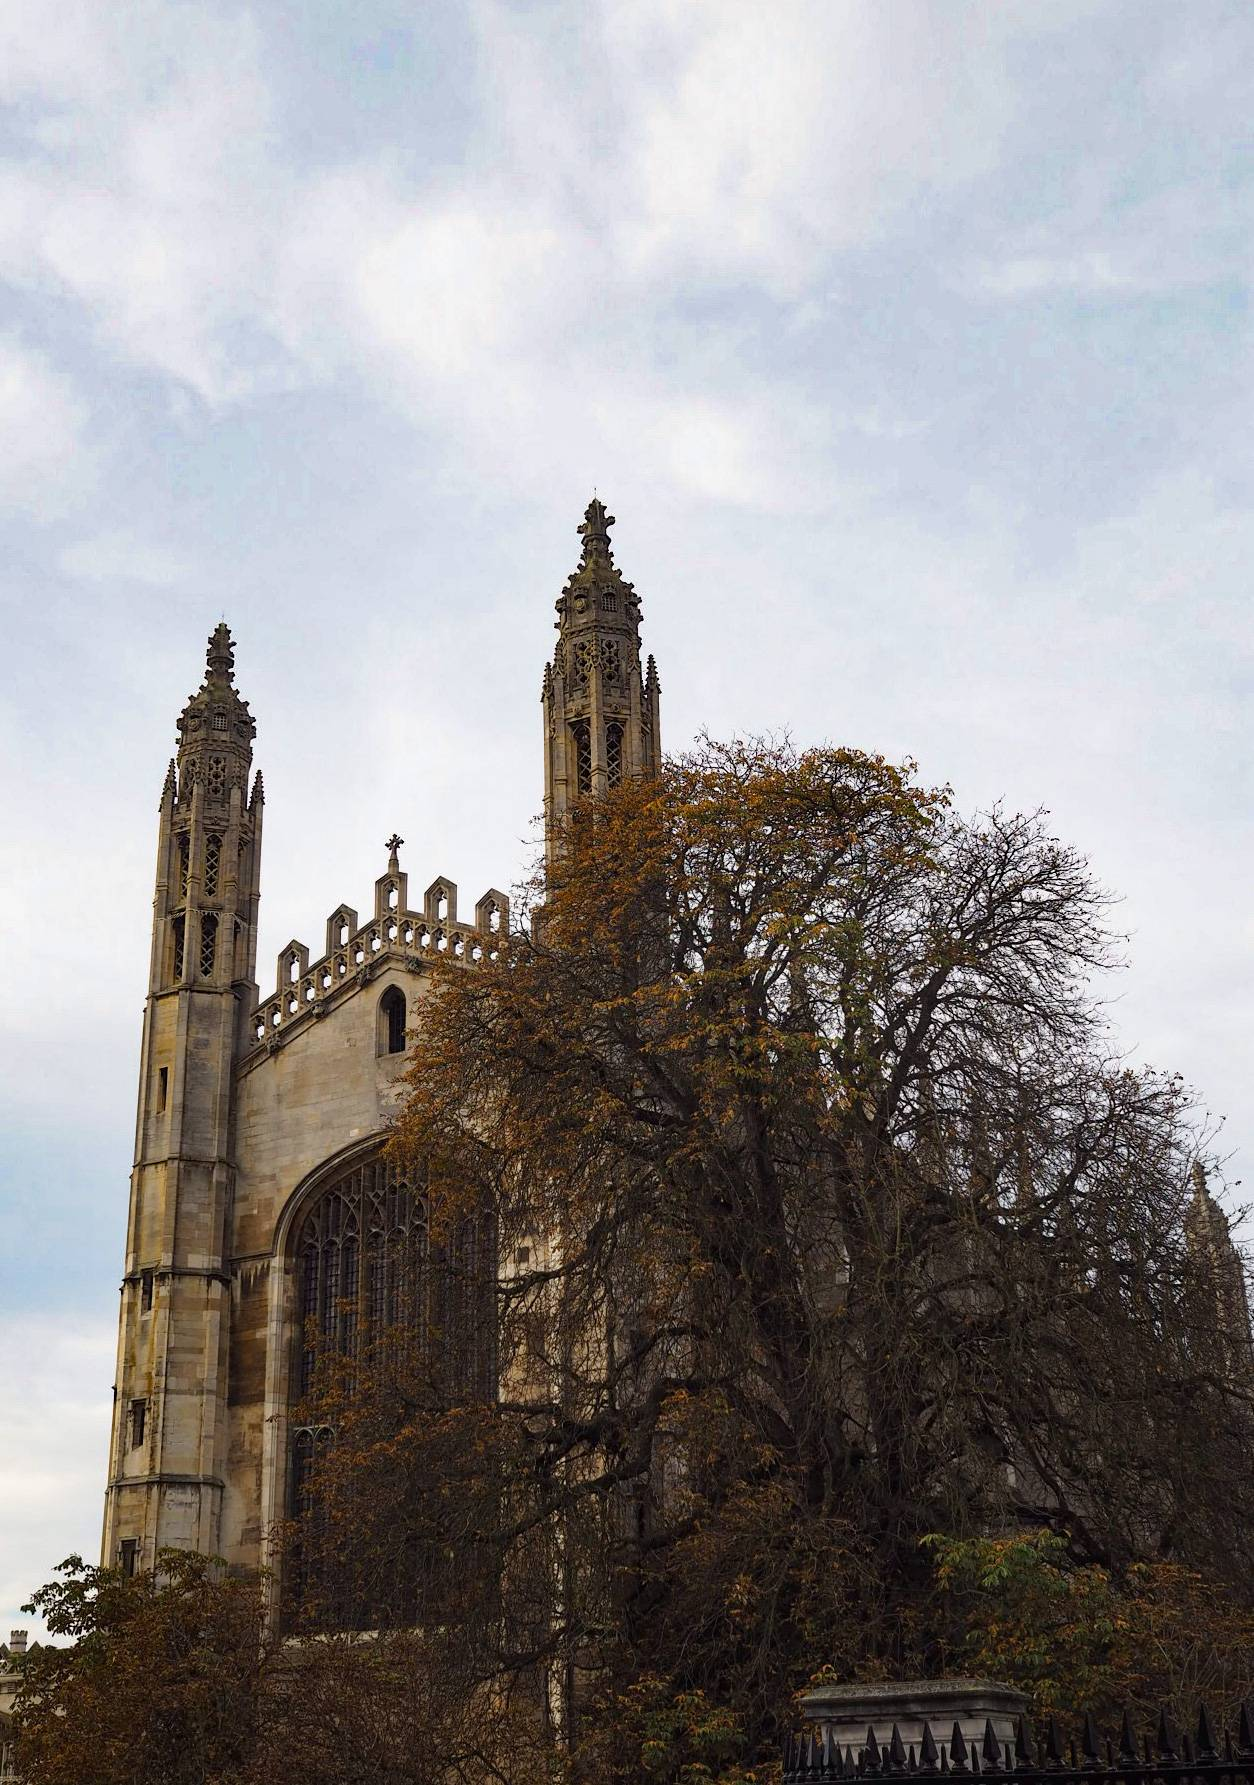 Kings college cambridge, kings college chapel, things to do in cambridge